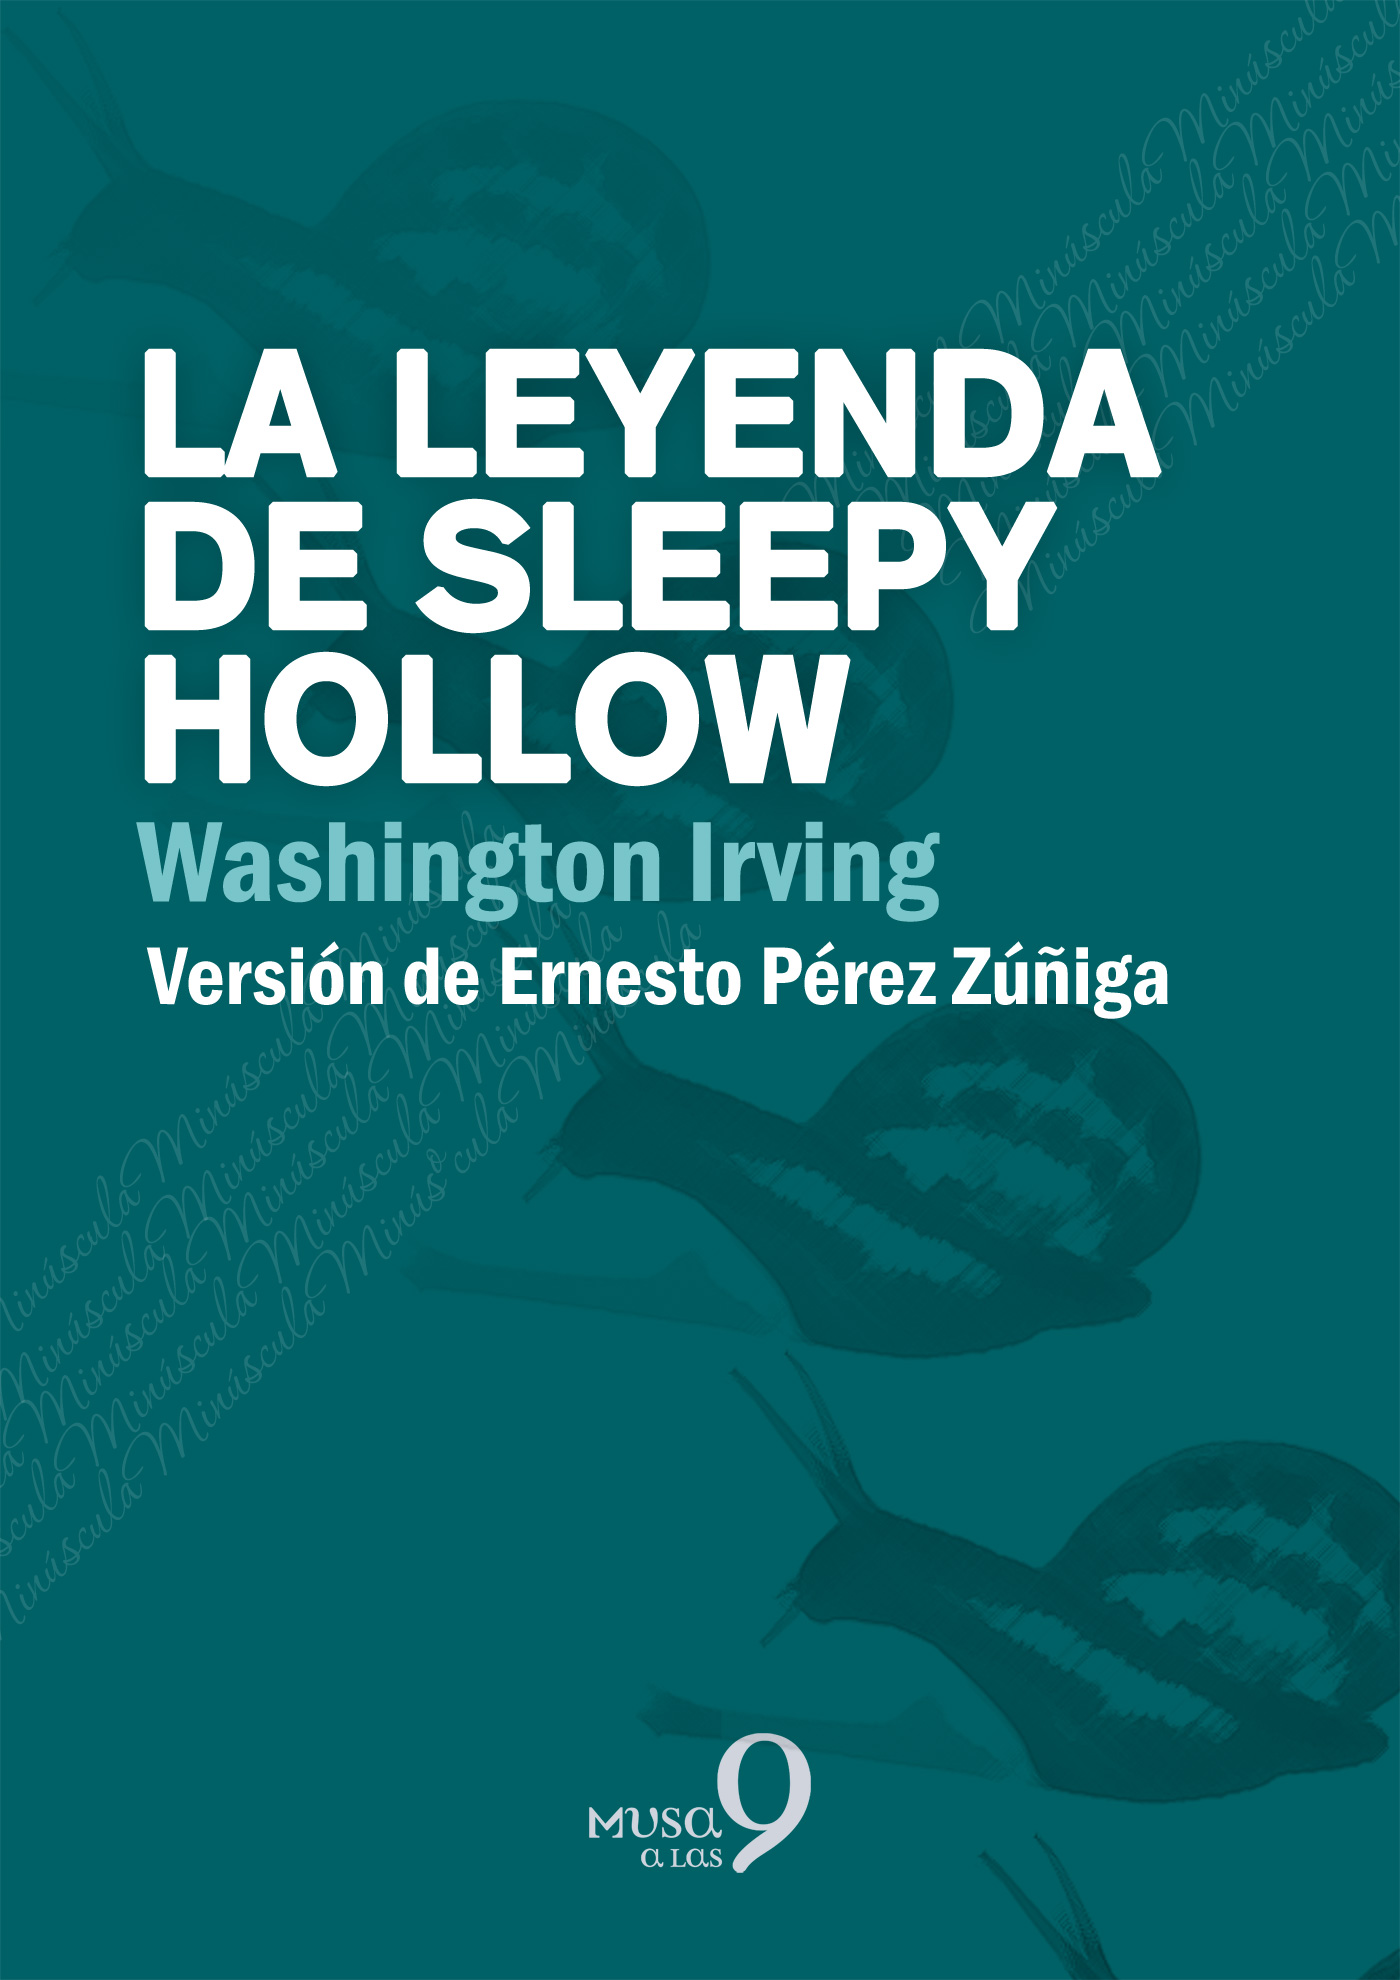 Leer Libros Gratis Por Internet La Leyenda De Sleepy Hollow By Washington Irving Read